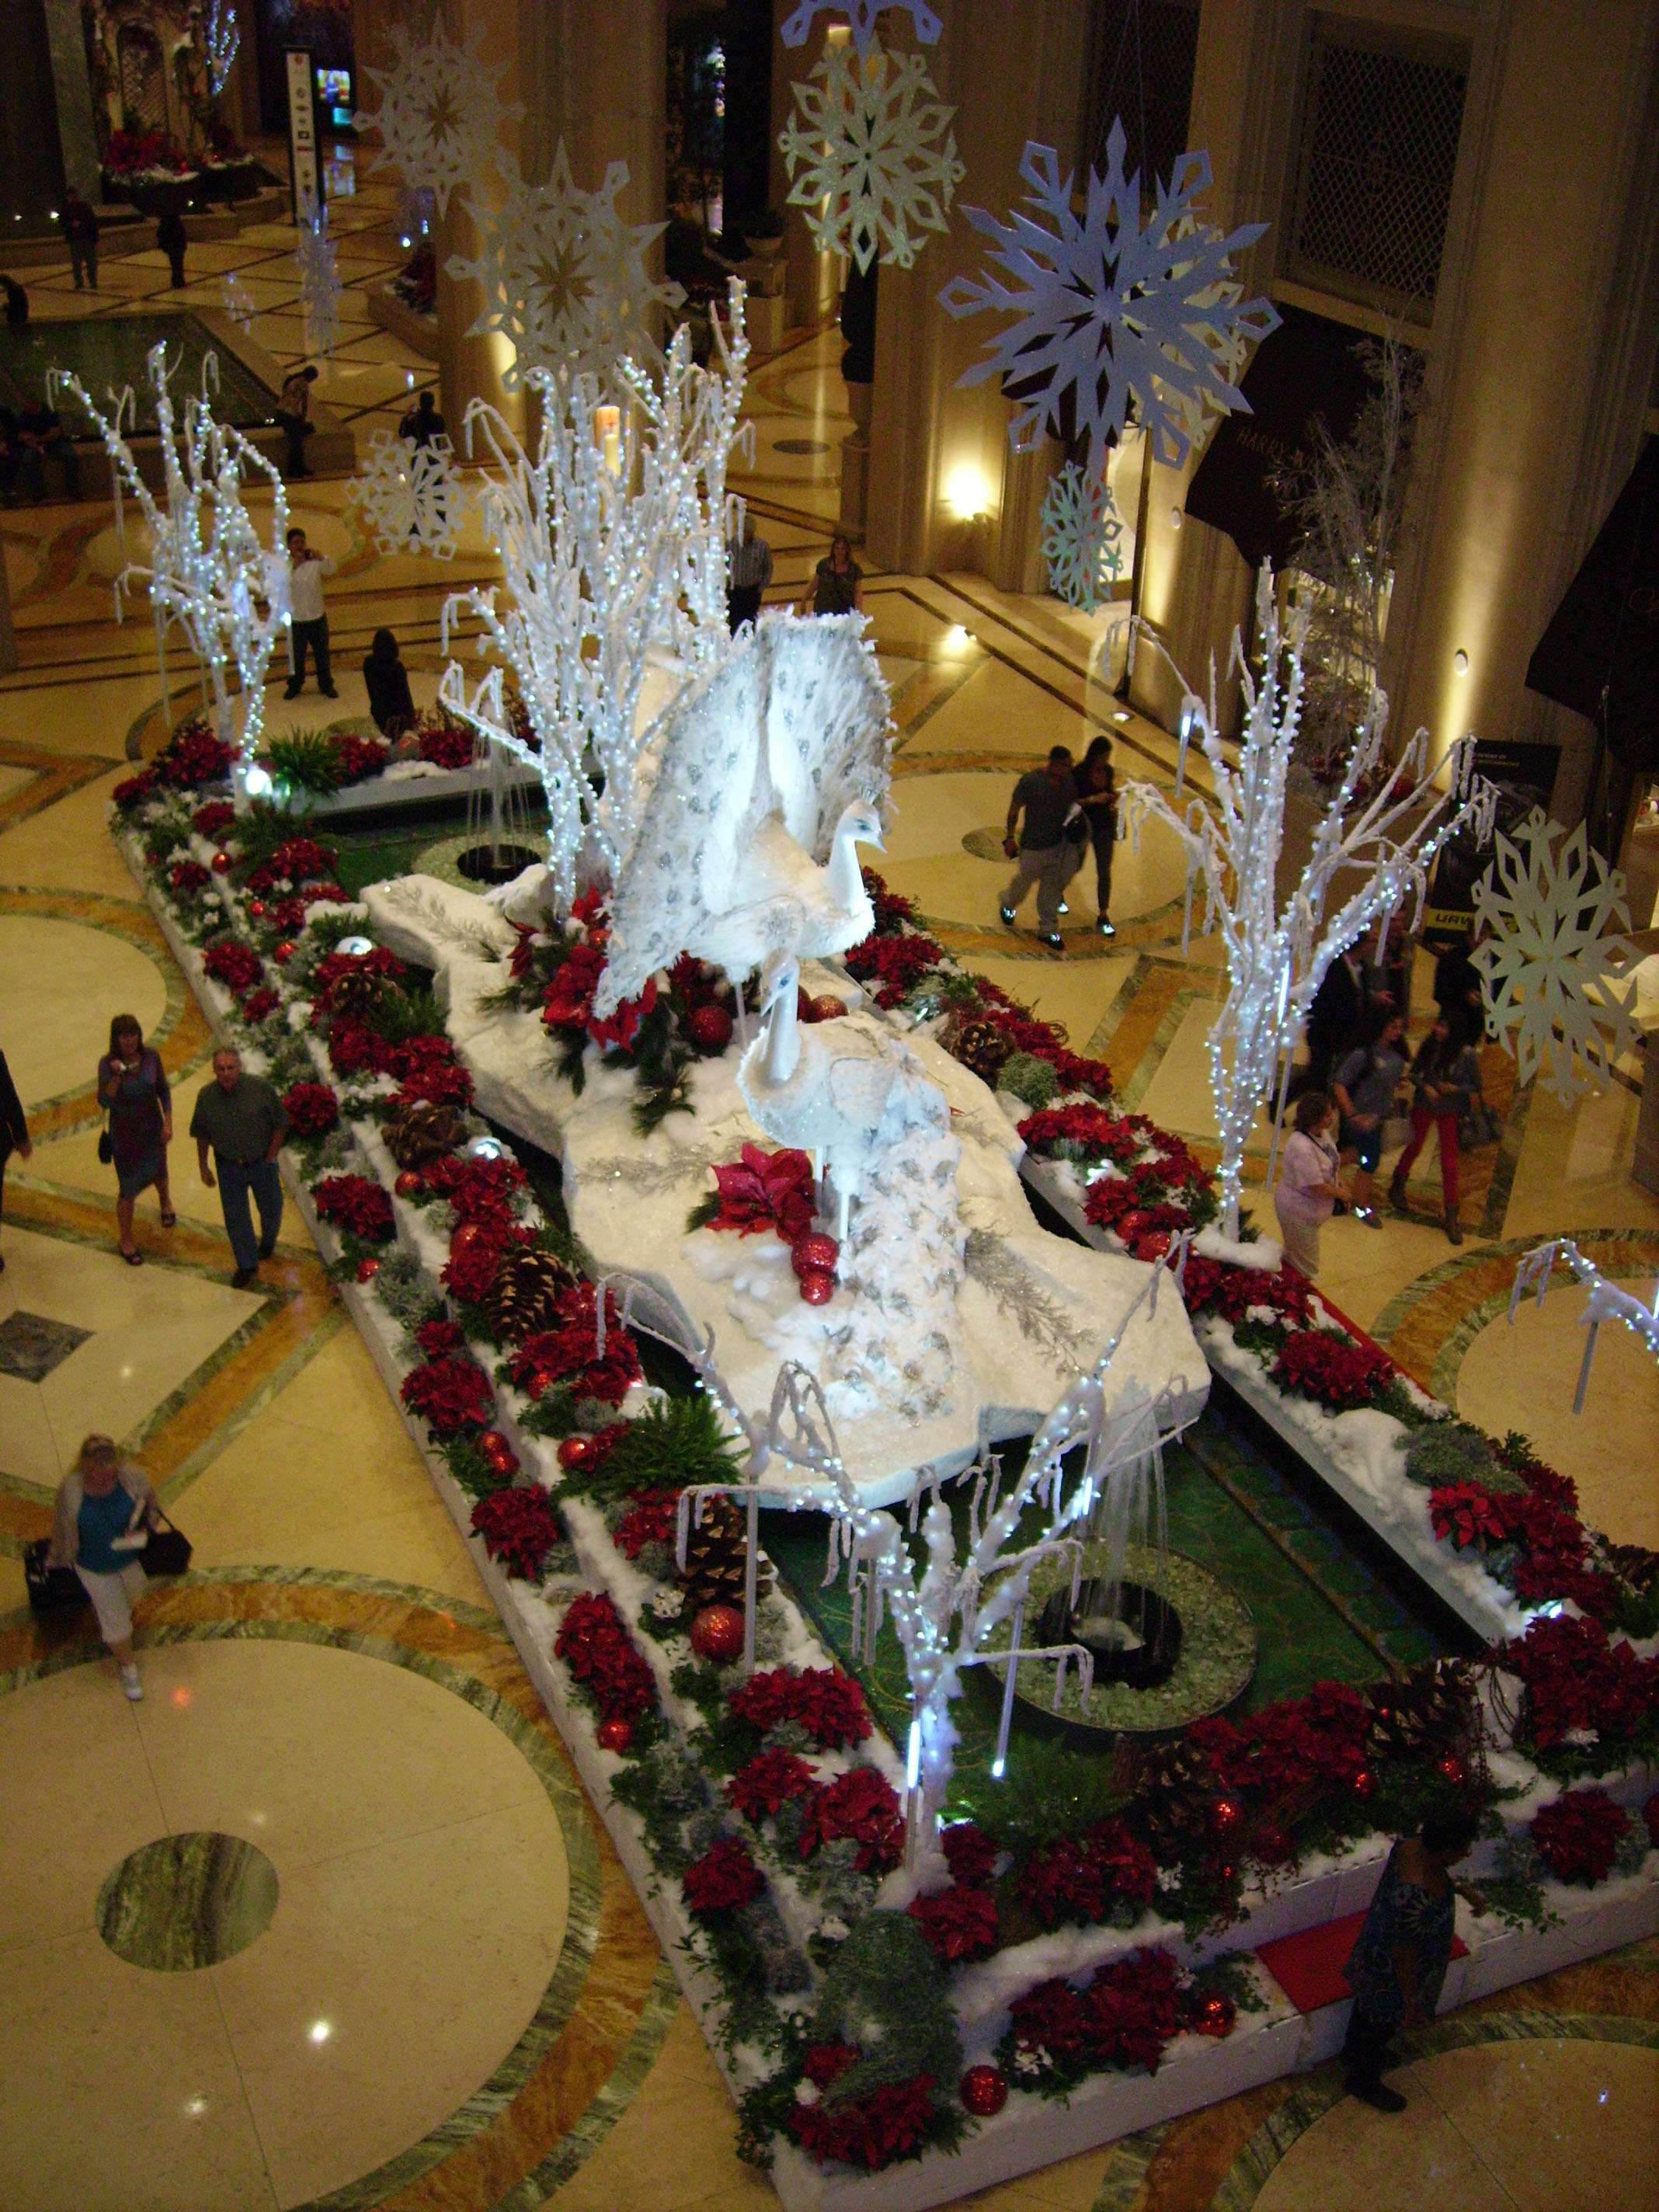 pentax image - Las Vegas Christmas Decorations